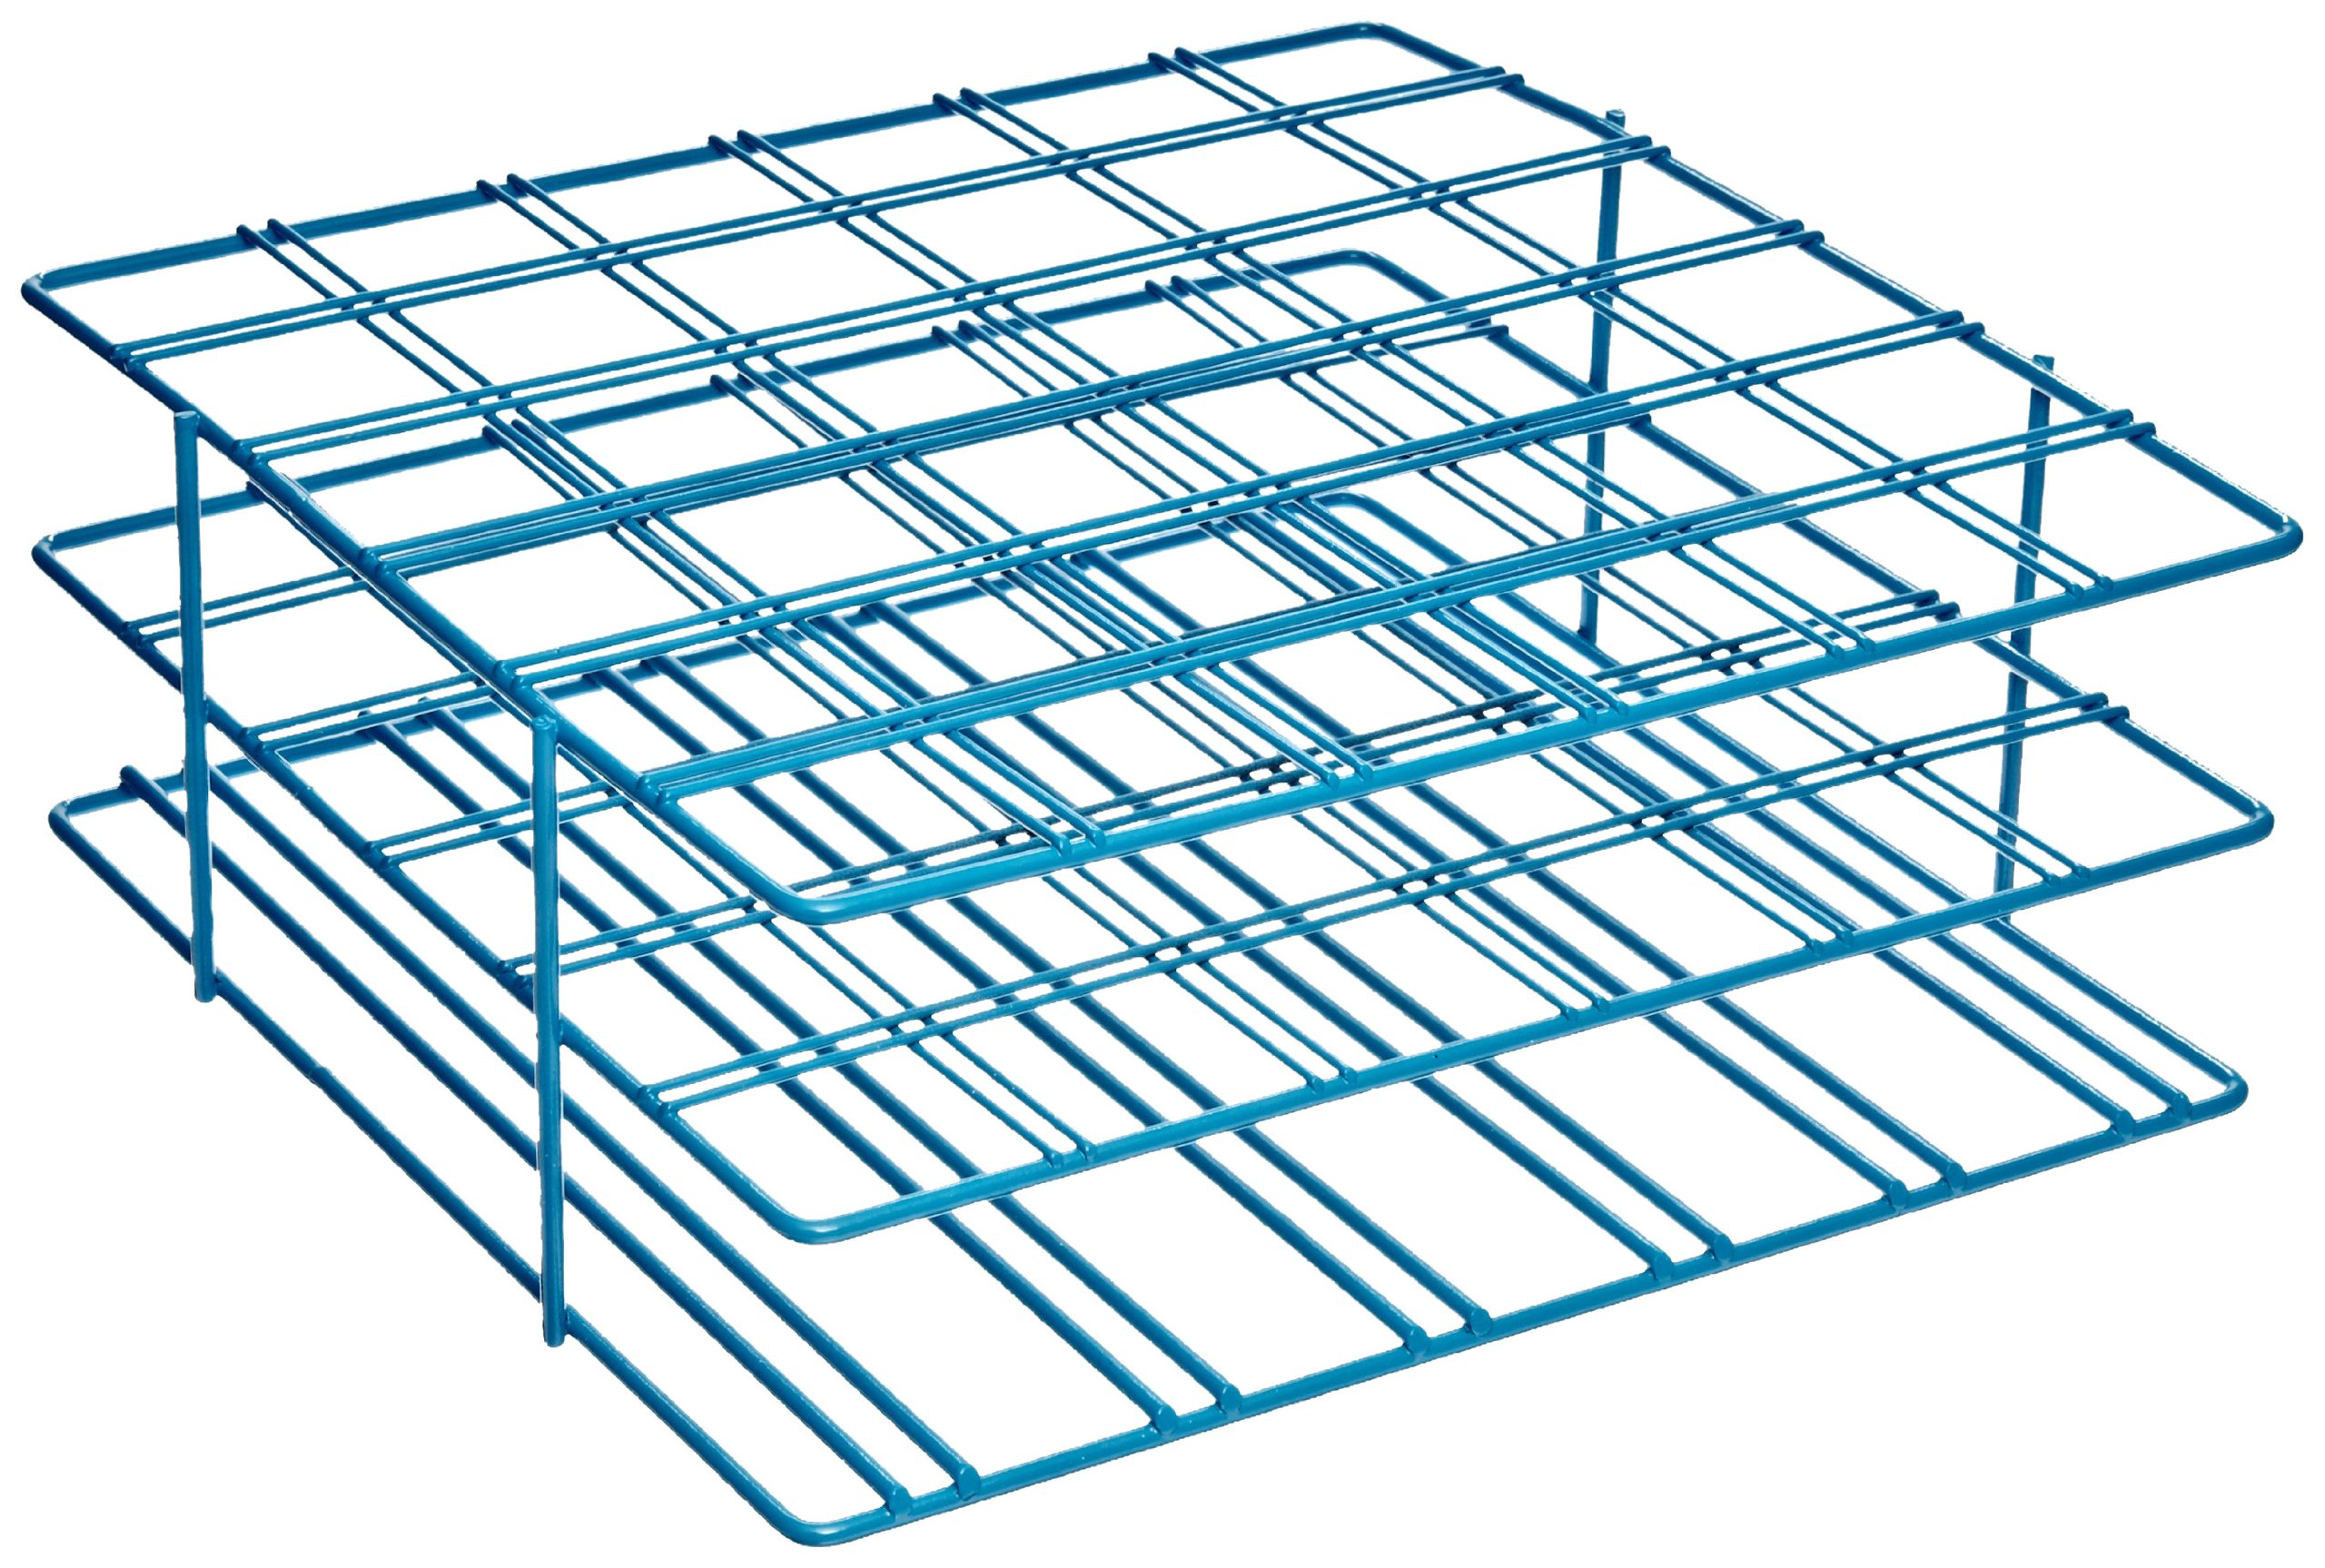 Bel-Art F18794-0002 Poxygrid Centrifuge Tube Rack; 50ml, 36 Places, 9 x 8⅞ x 3½ in., Blue by SP Scienceware